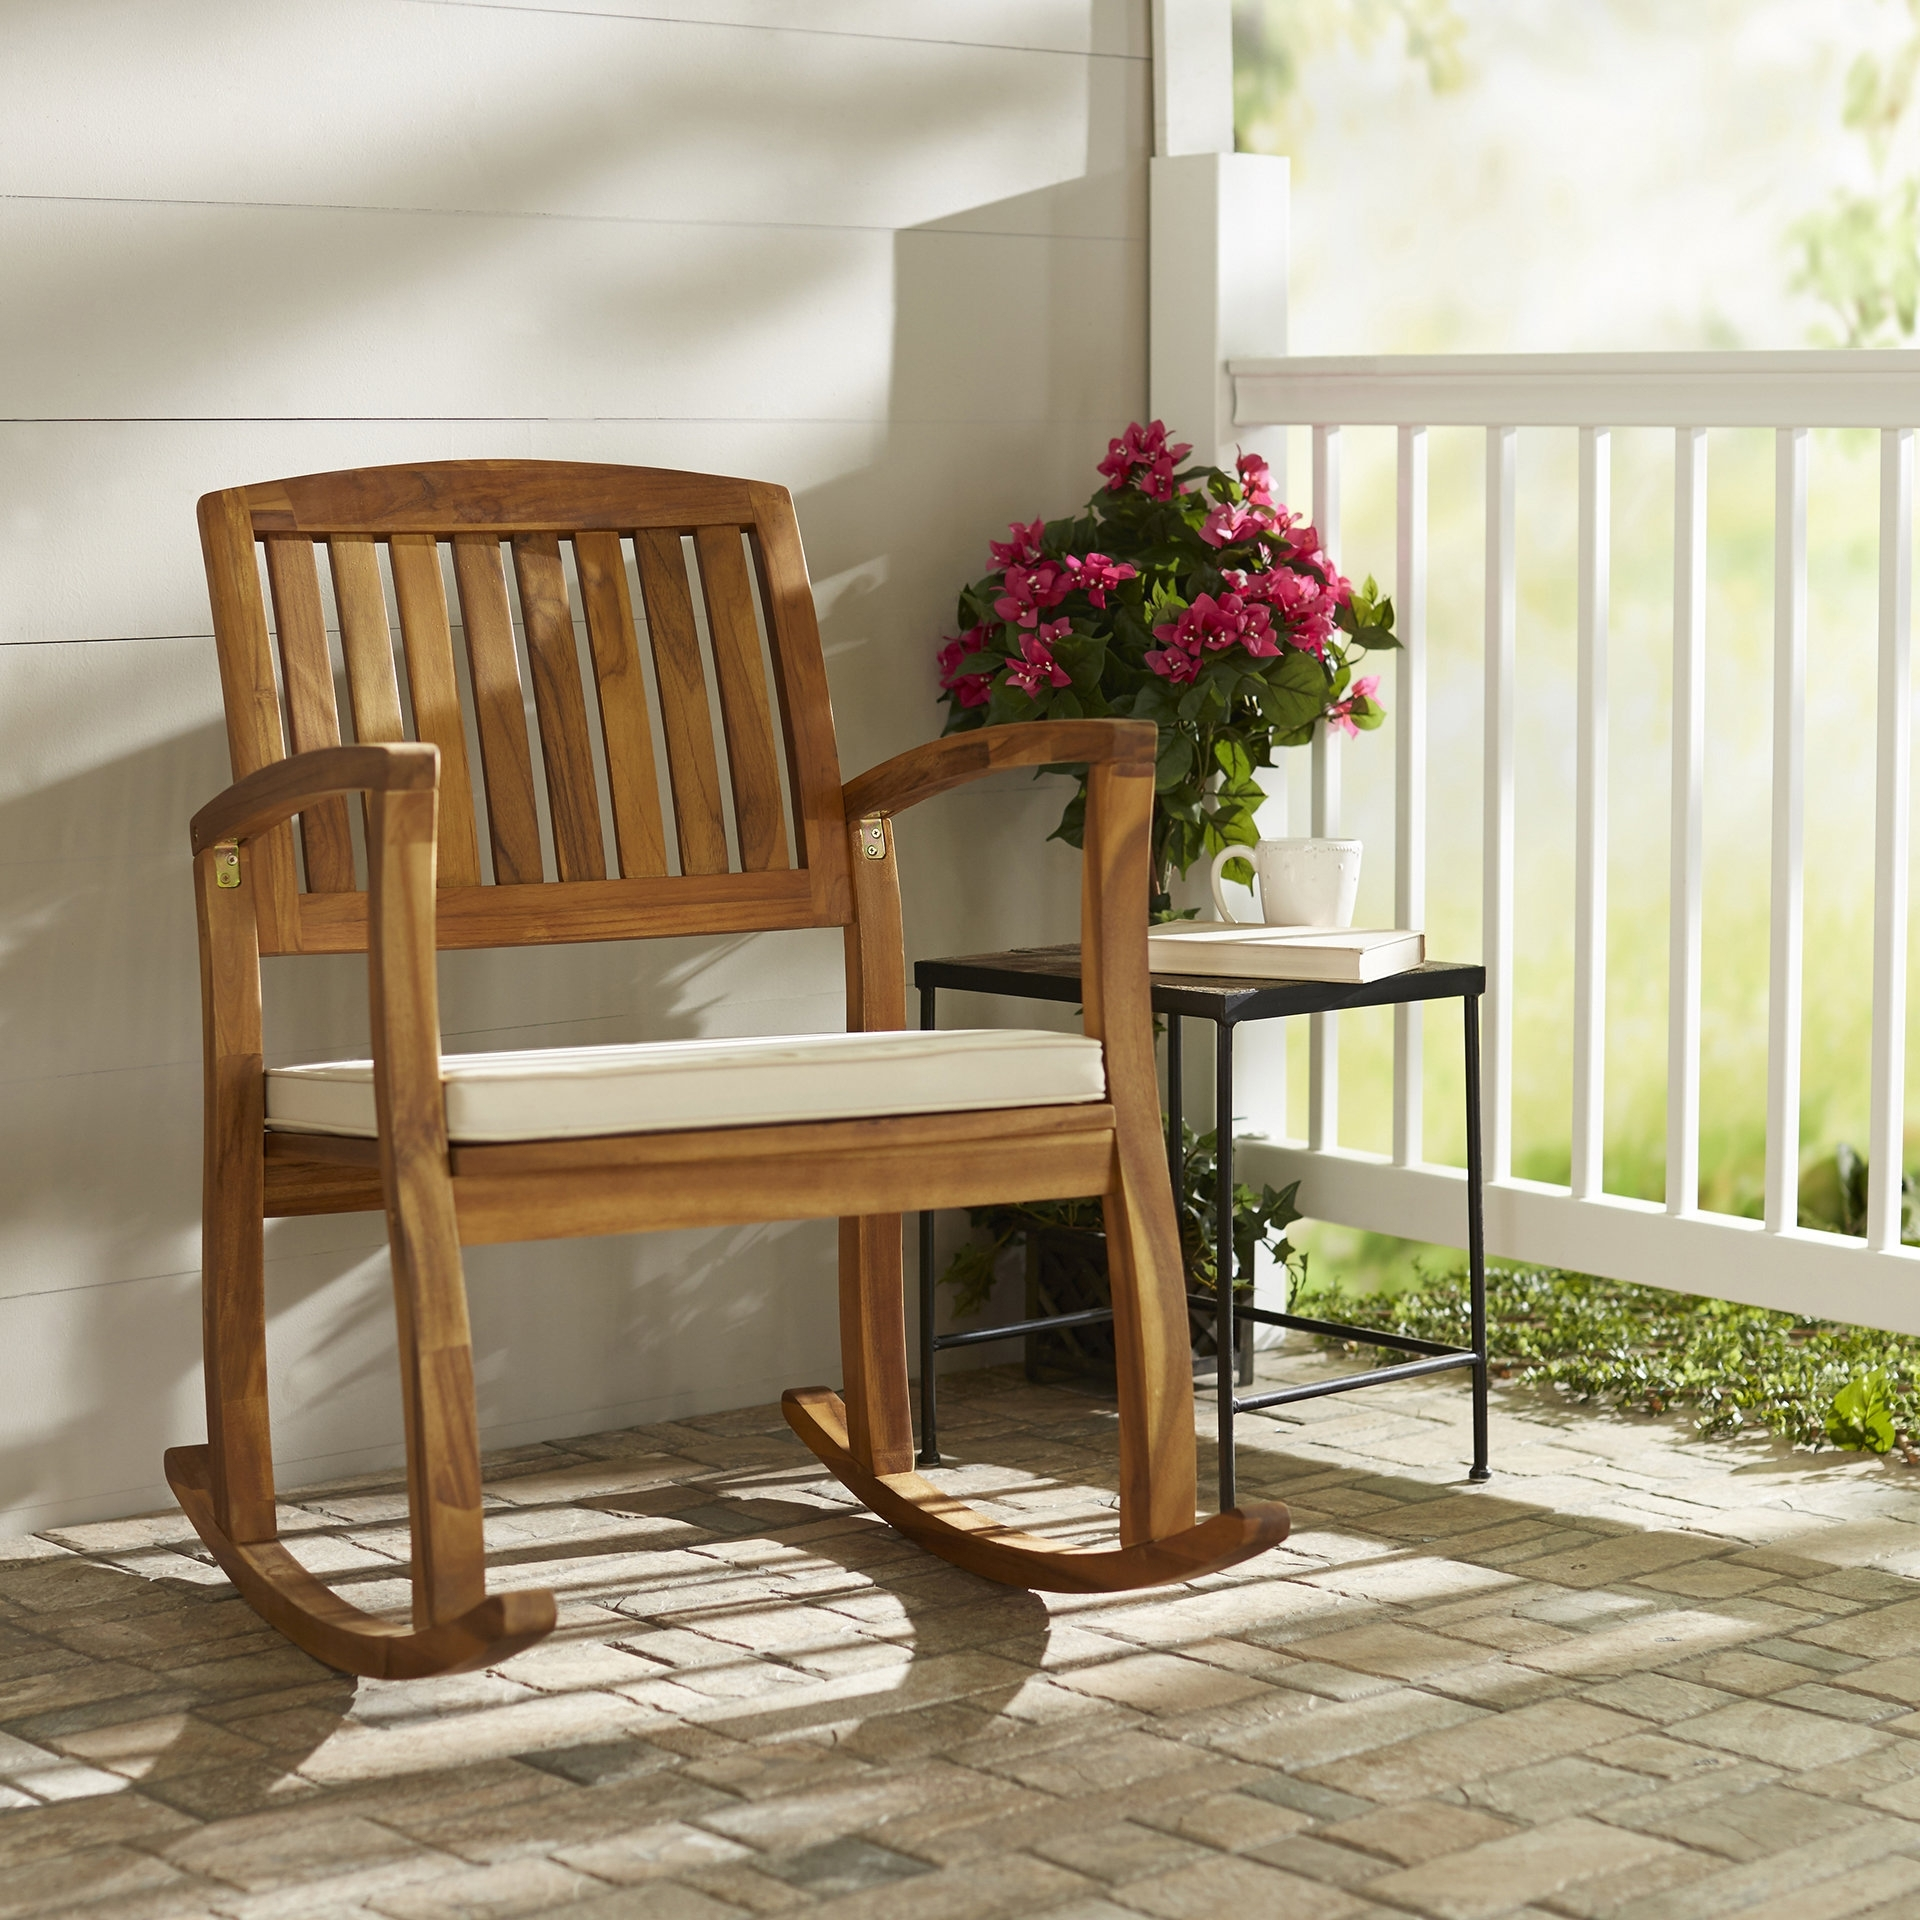 Rocking Chairs For Adults With Regard To Famous Highland Dunes Kairi Rocking Chair With Cushion & Reviews (View 14 of 15)